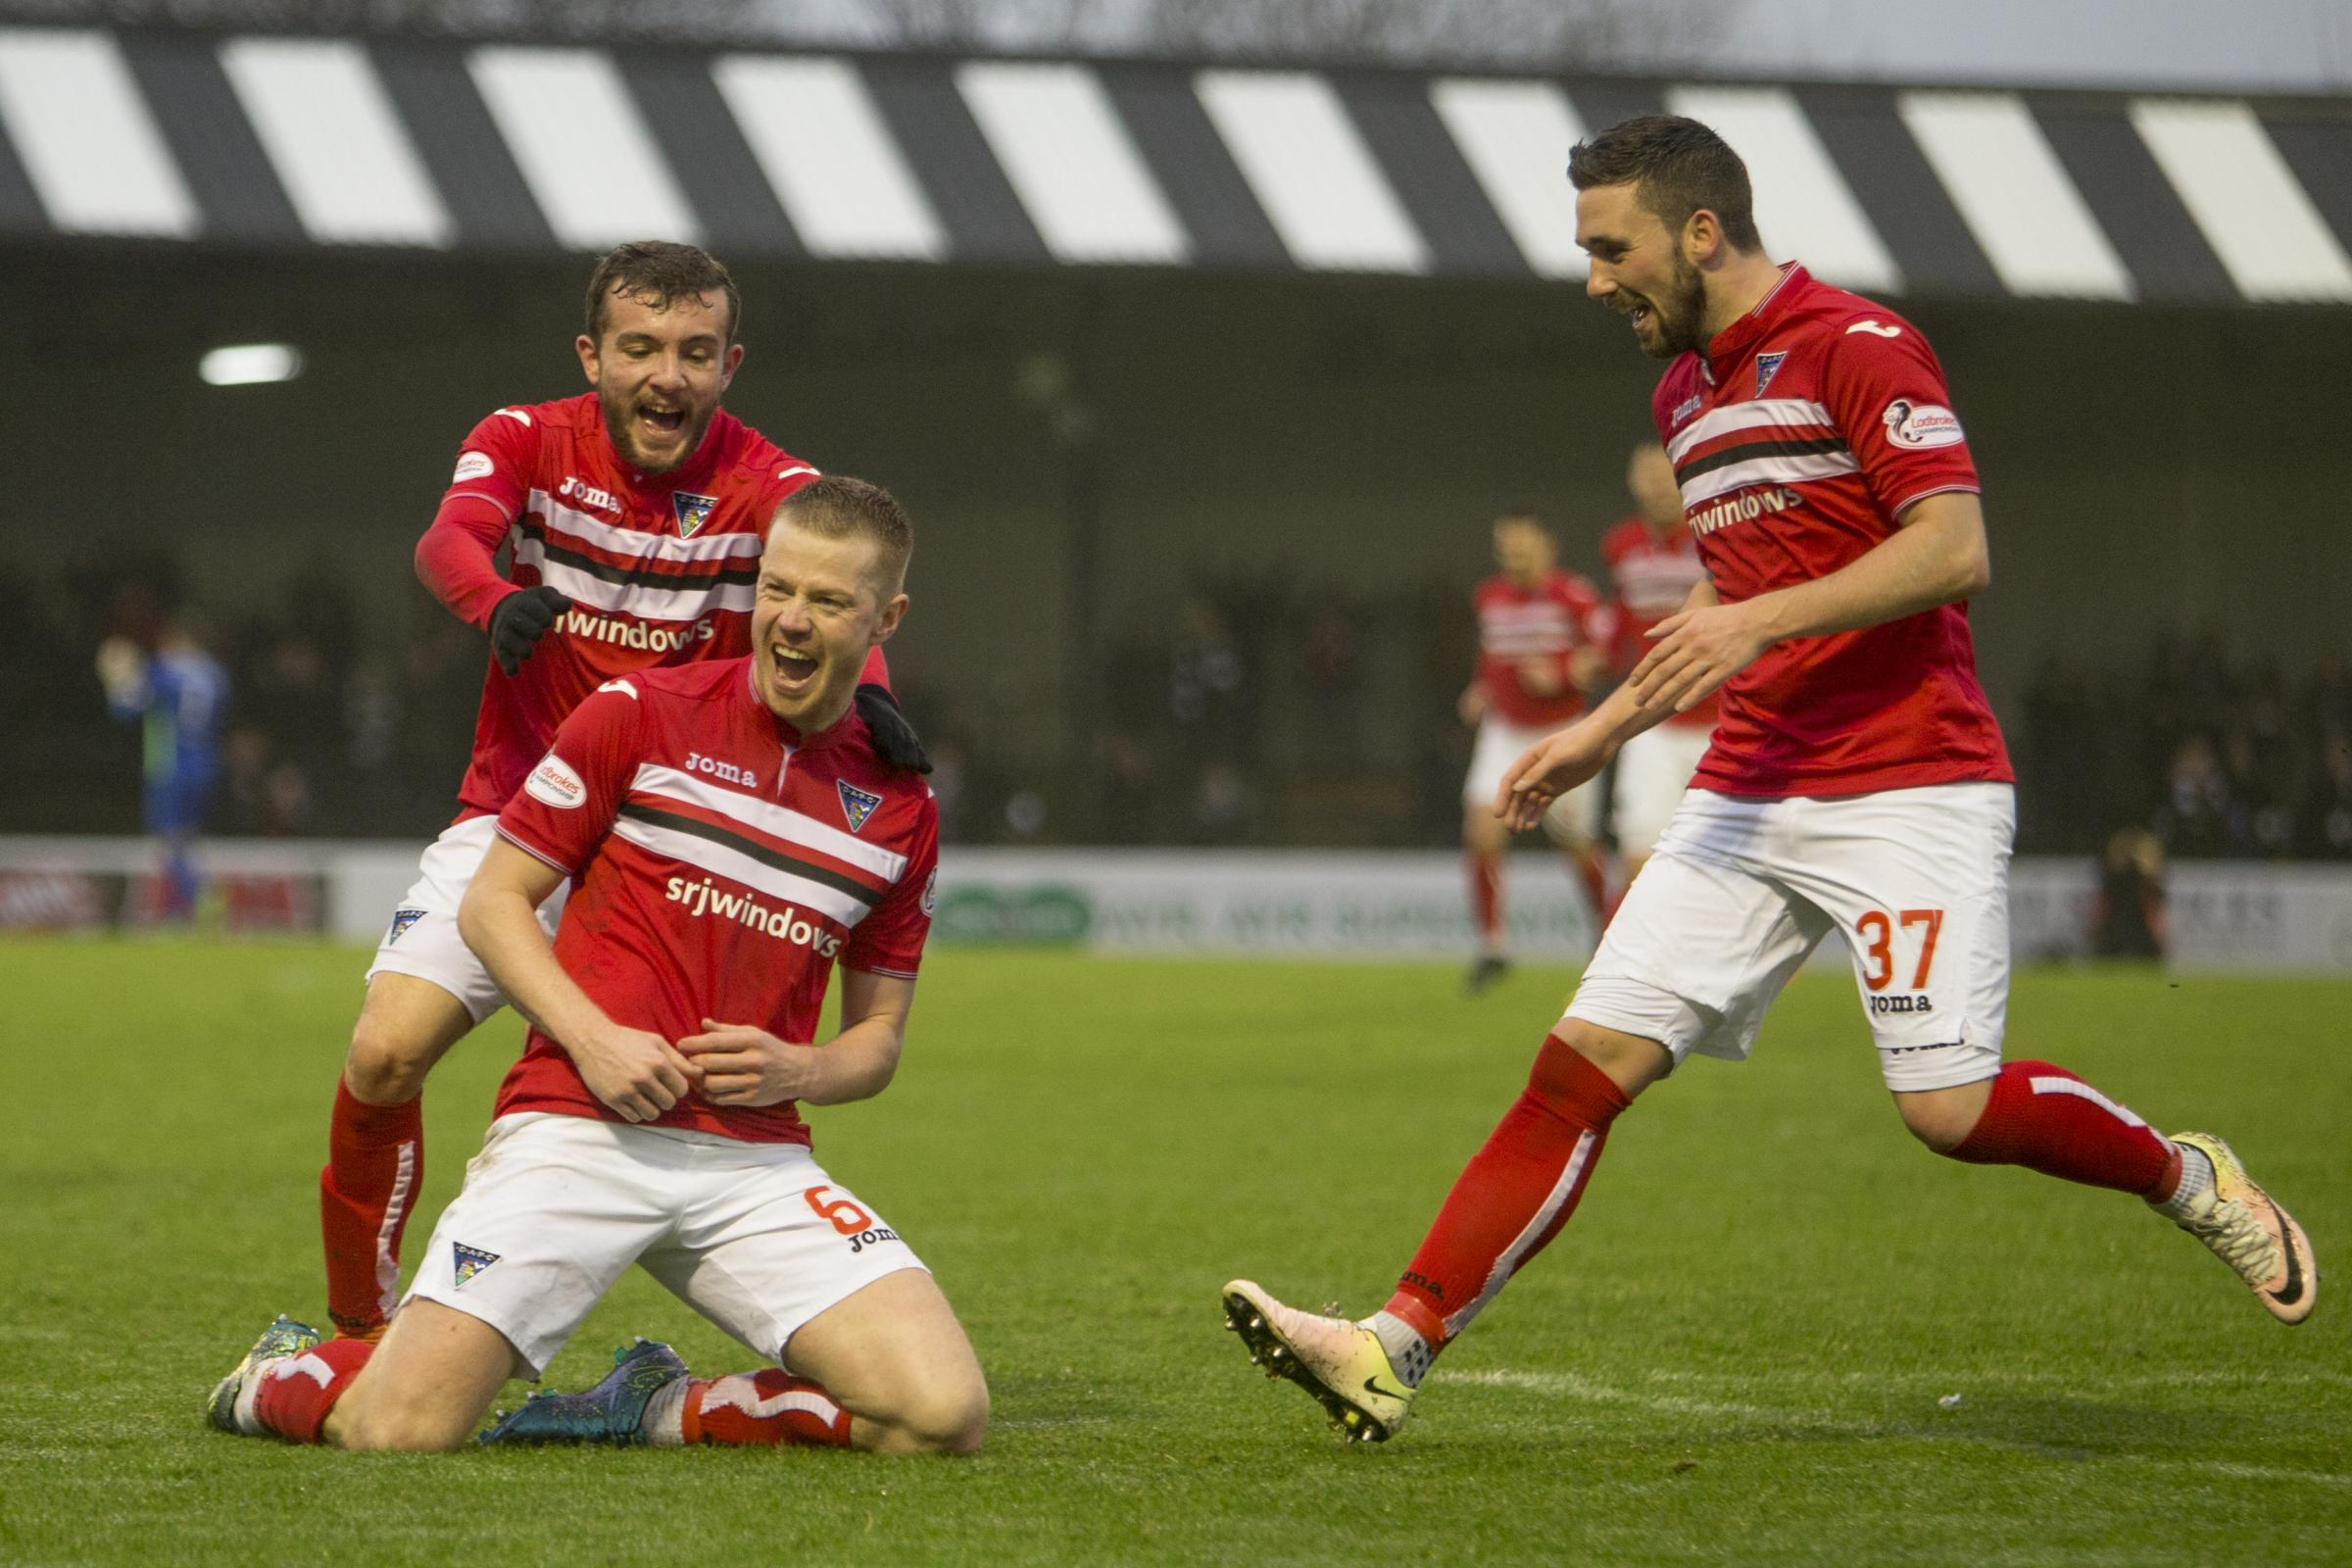 Geggan leaves Pars for Ayr